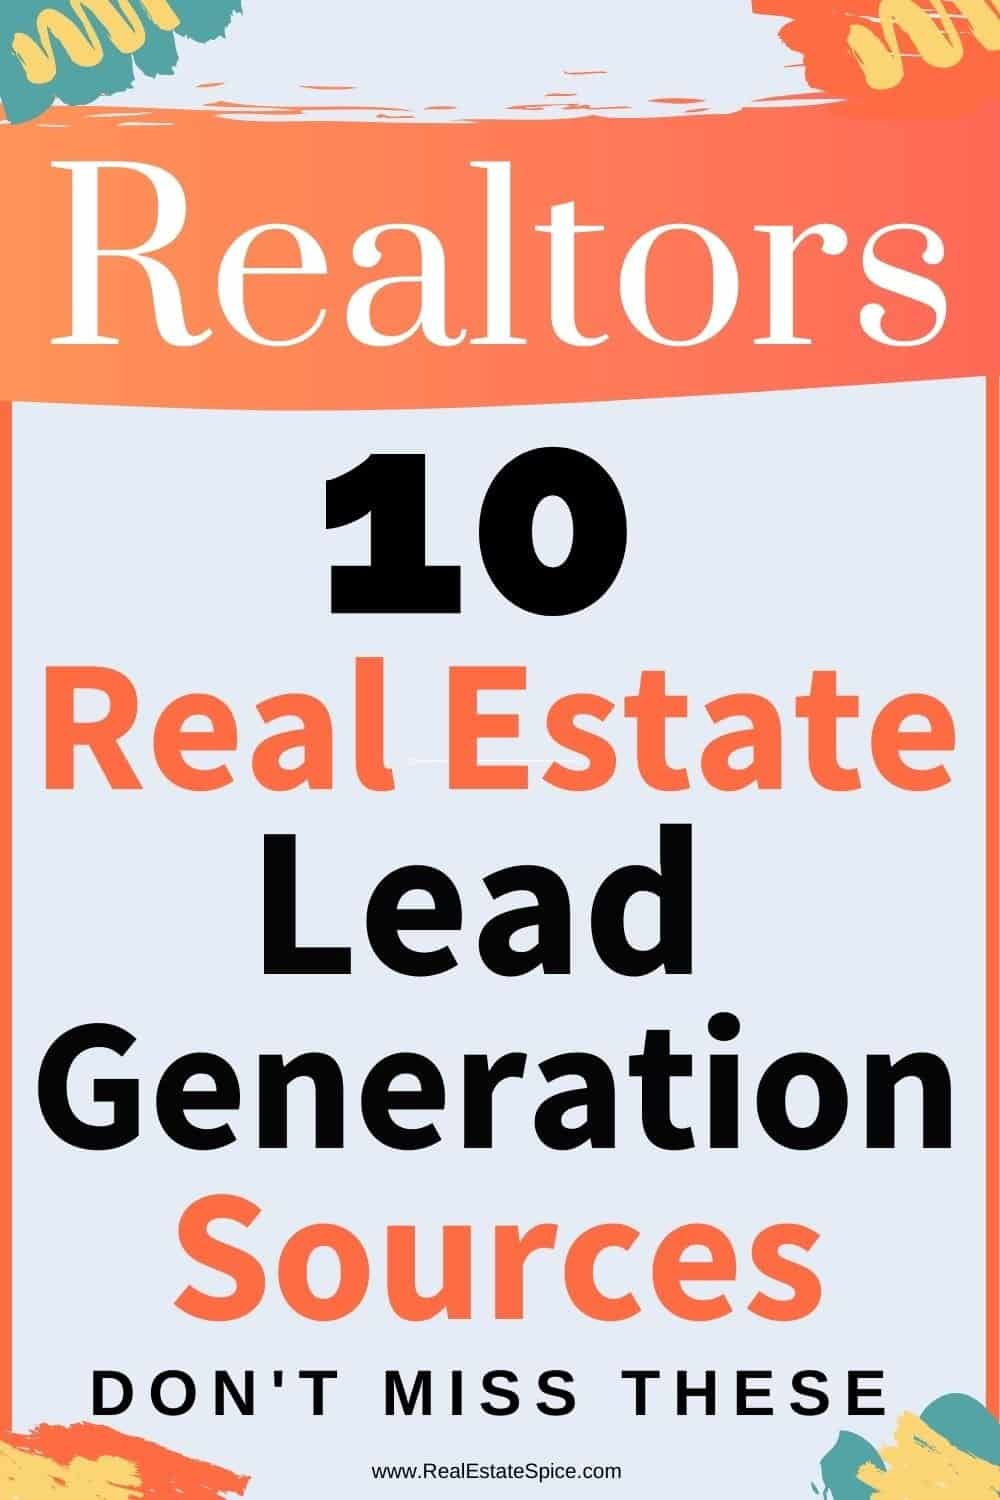 10 Real Estate Lead Generation Sources 2021